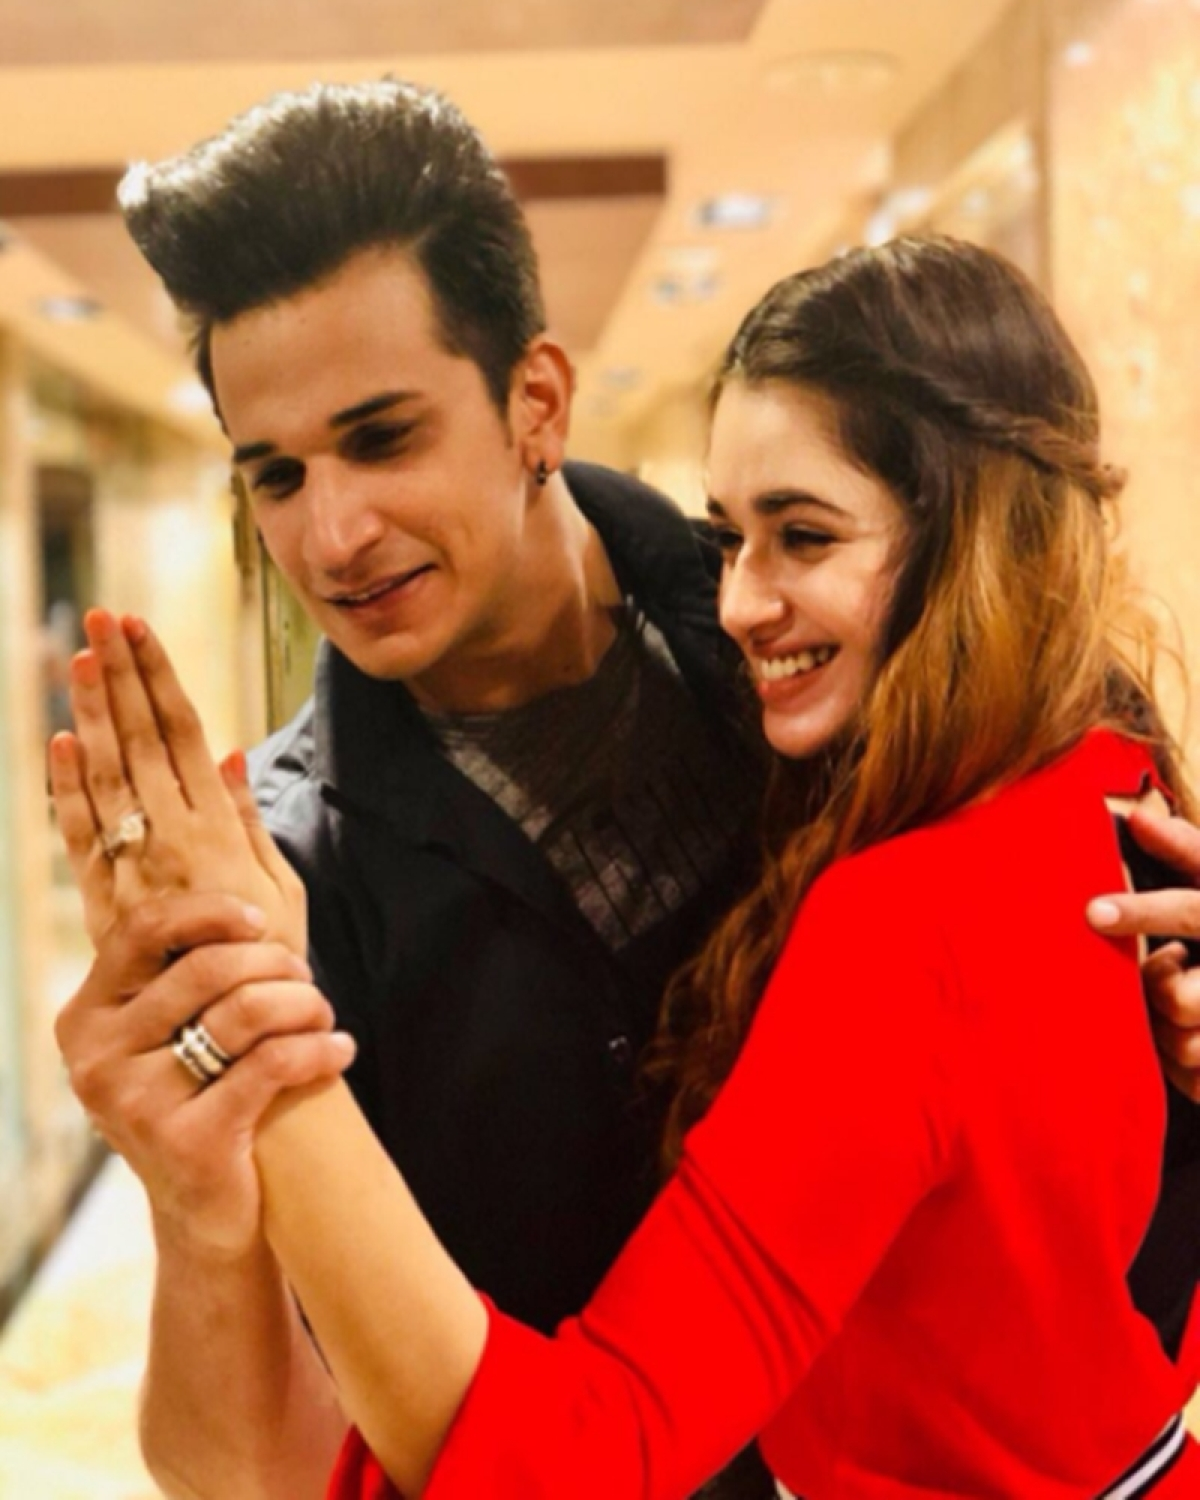 Couple goals! Prince Narula adds Yuvika's name to his name, but asks her not to do the same